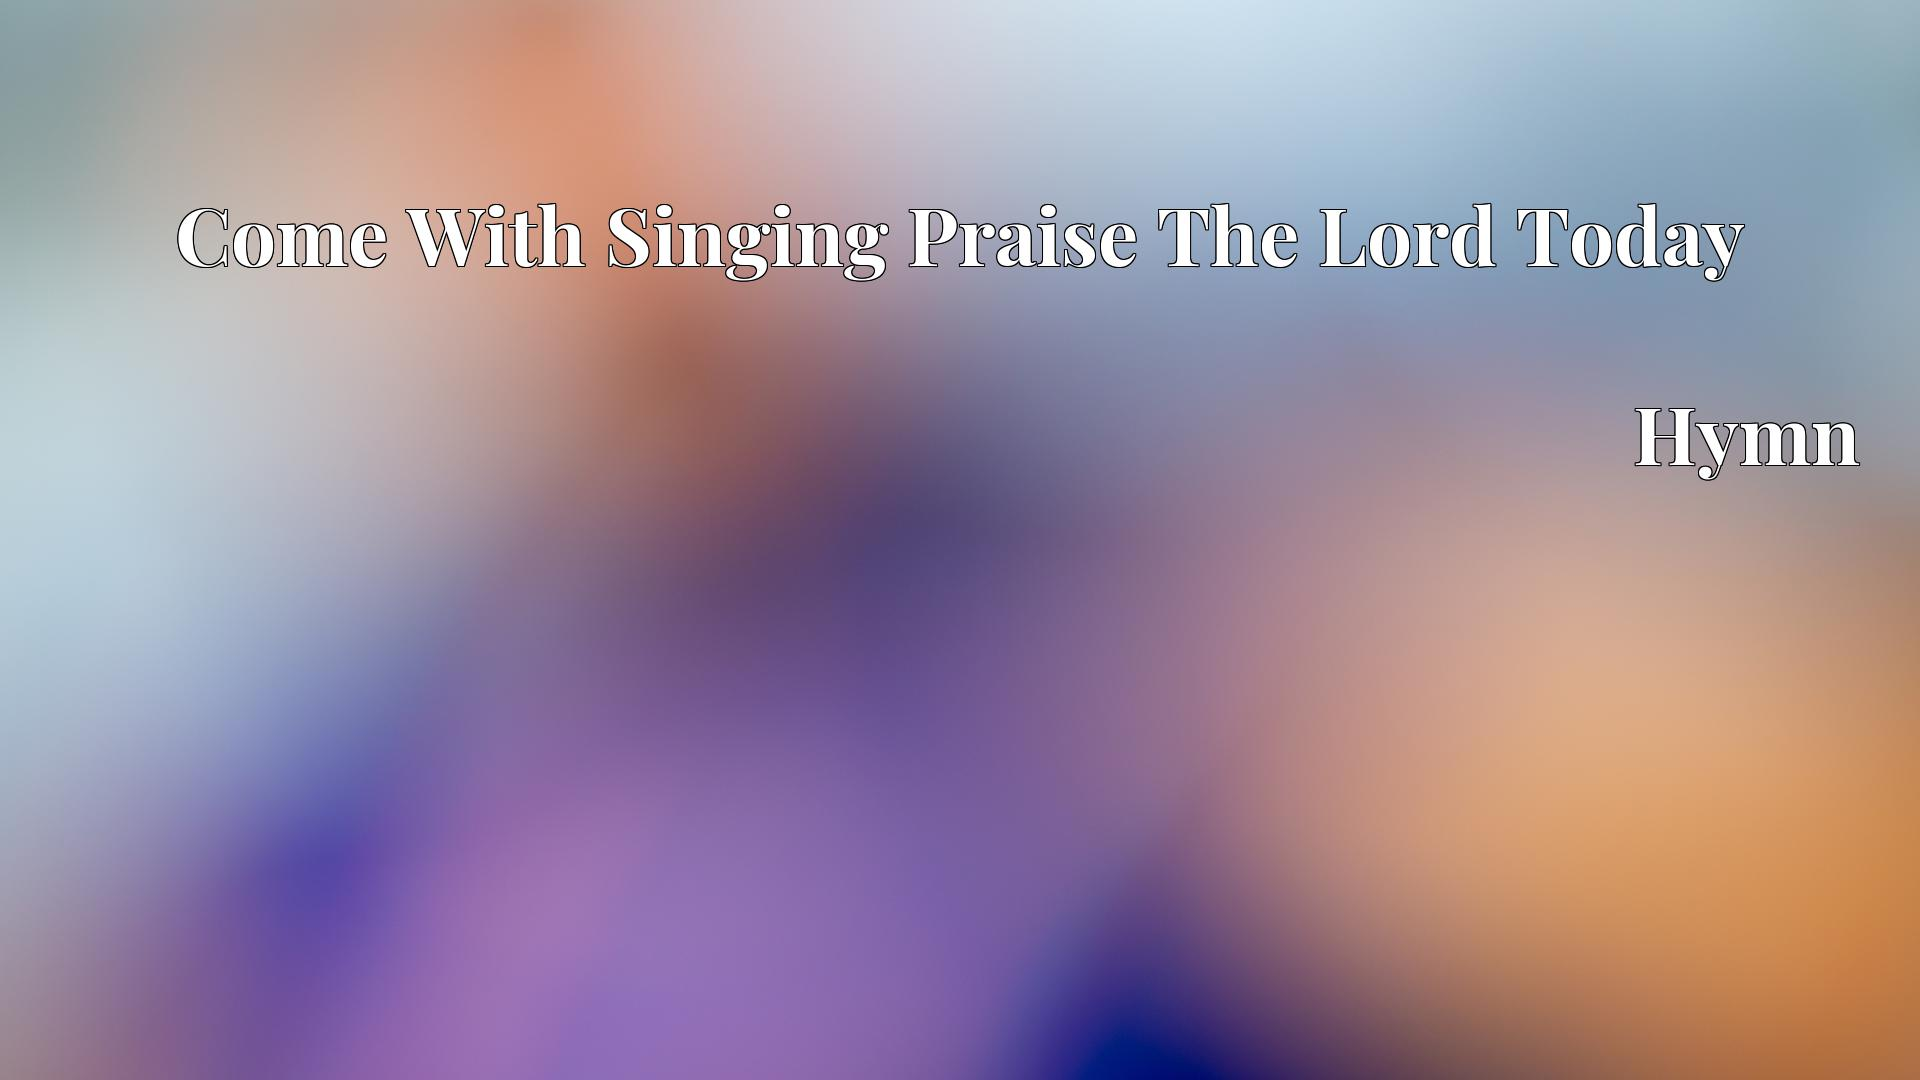 Come With Singing Praise The Lord Today - Hymn